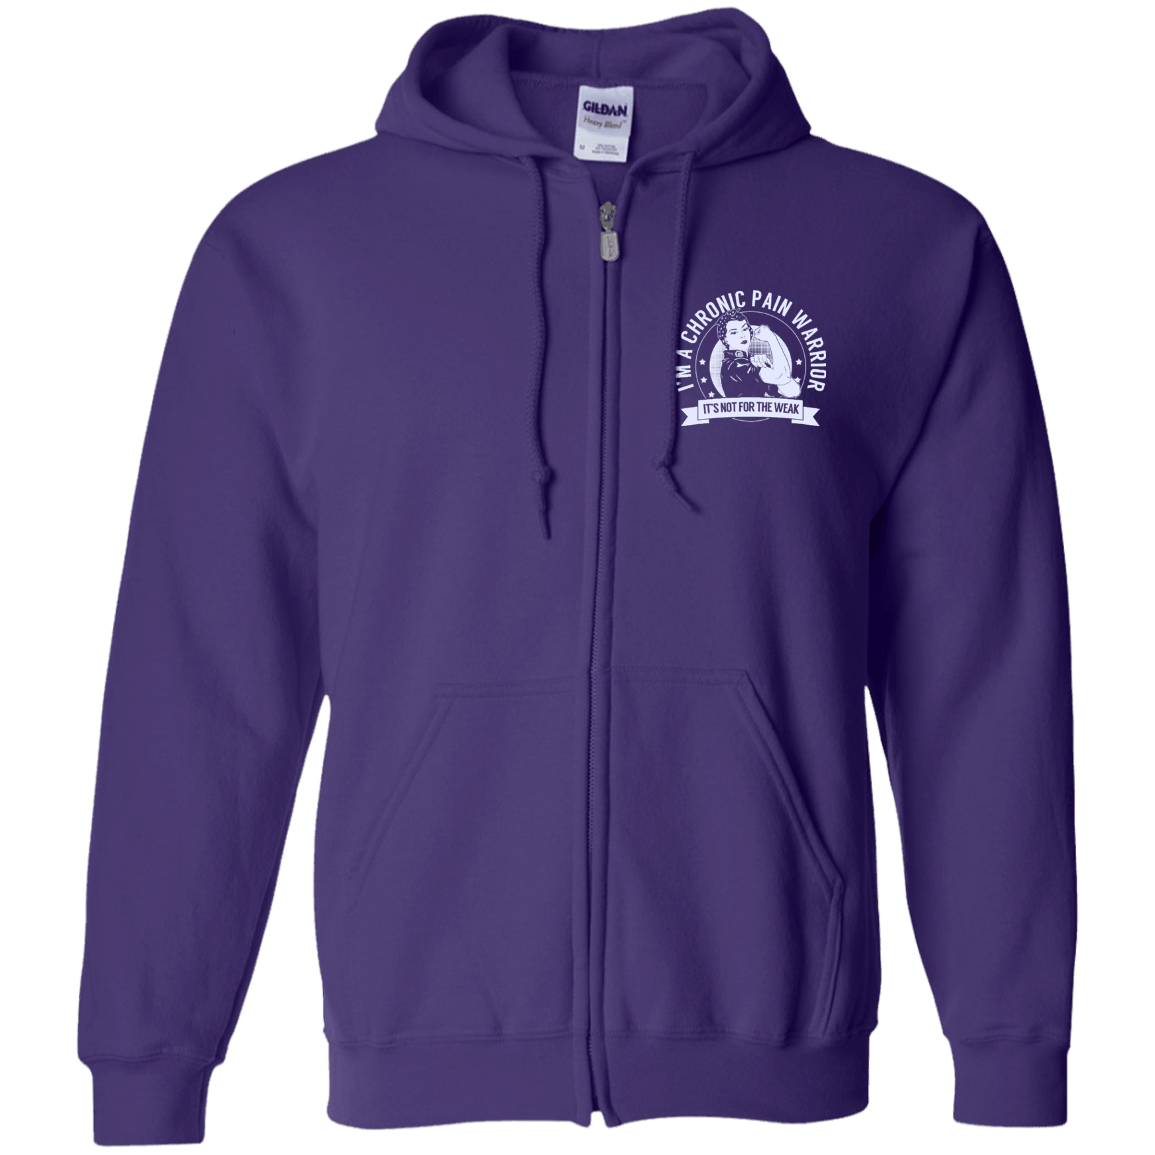 Sweatshirts - Chronic Pain Warrior NFTW Zip Up Hooded Sweatshirt